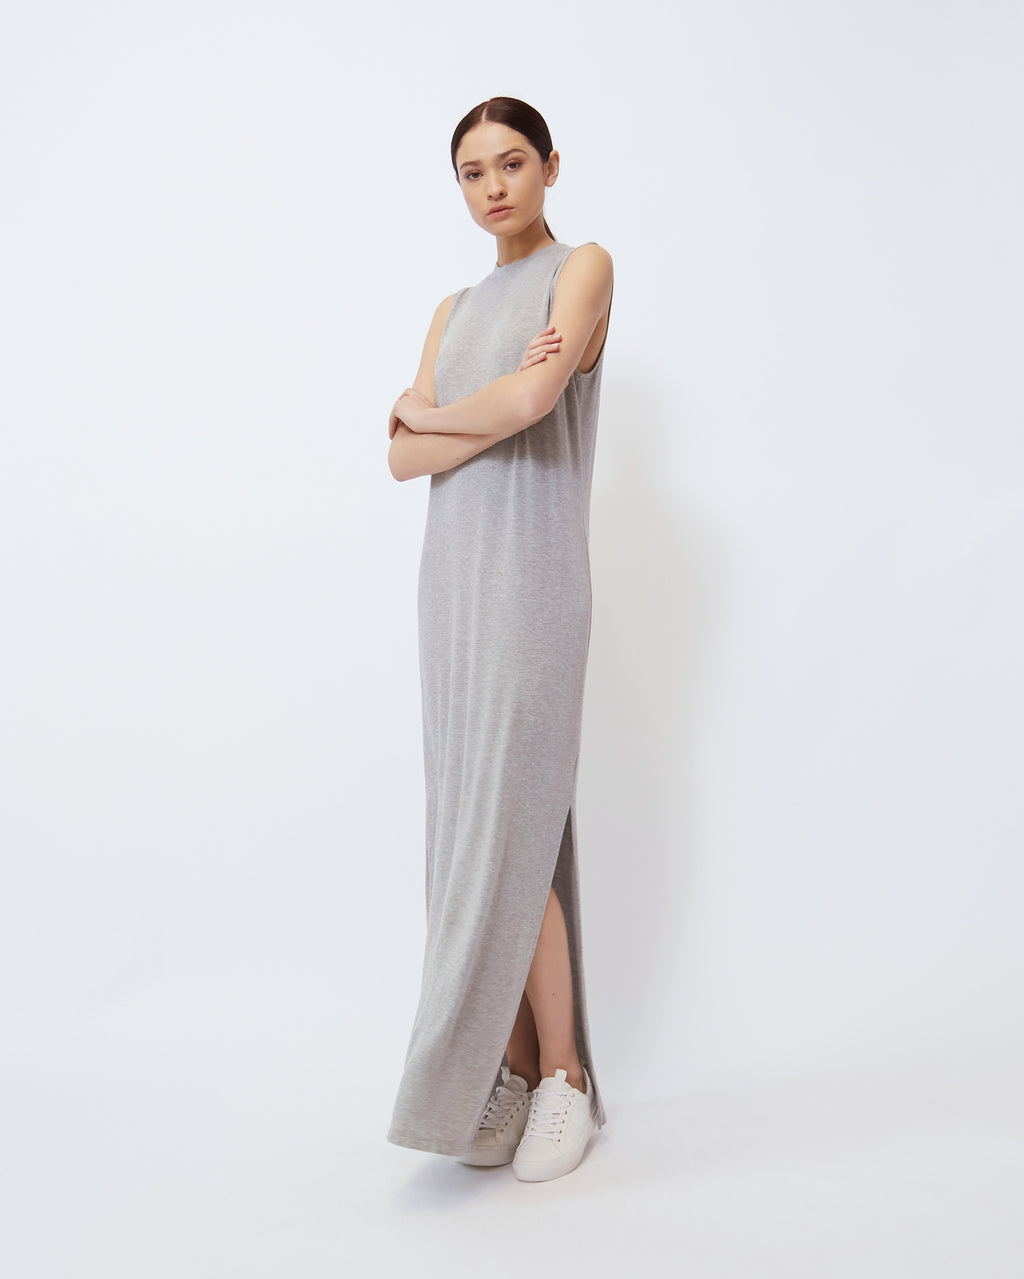 The Abbot Dress in Heather Grey